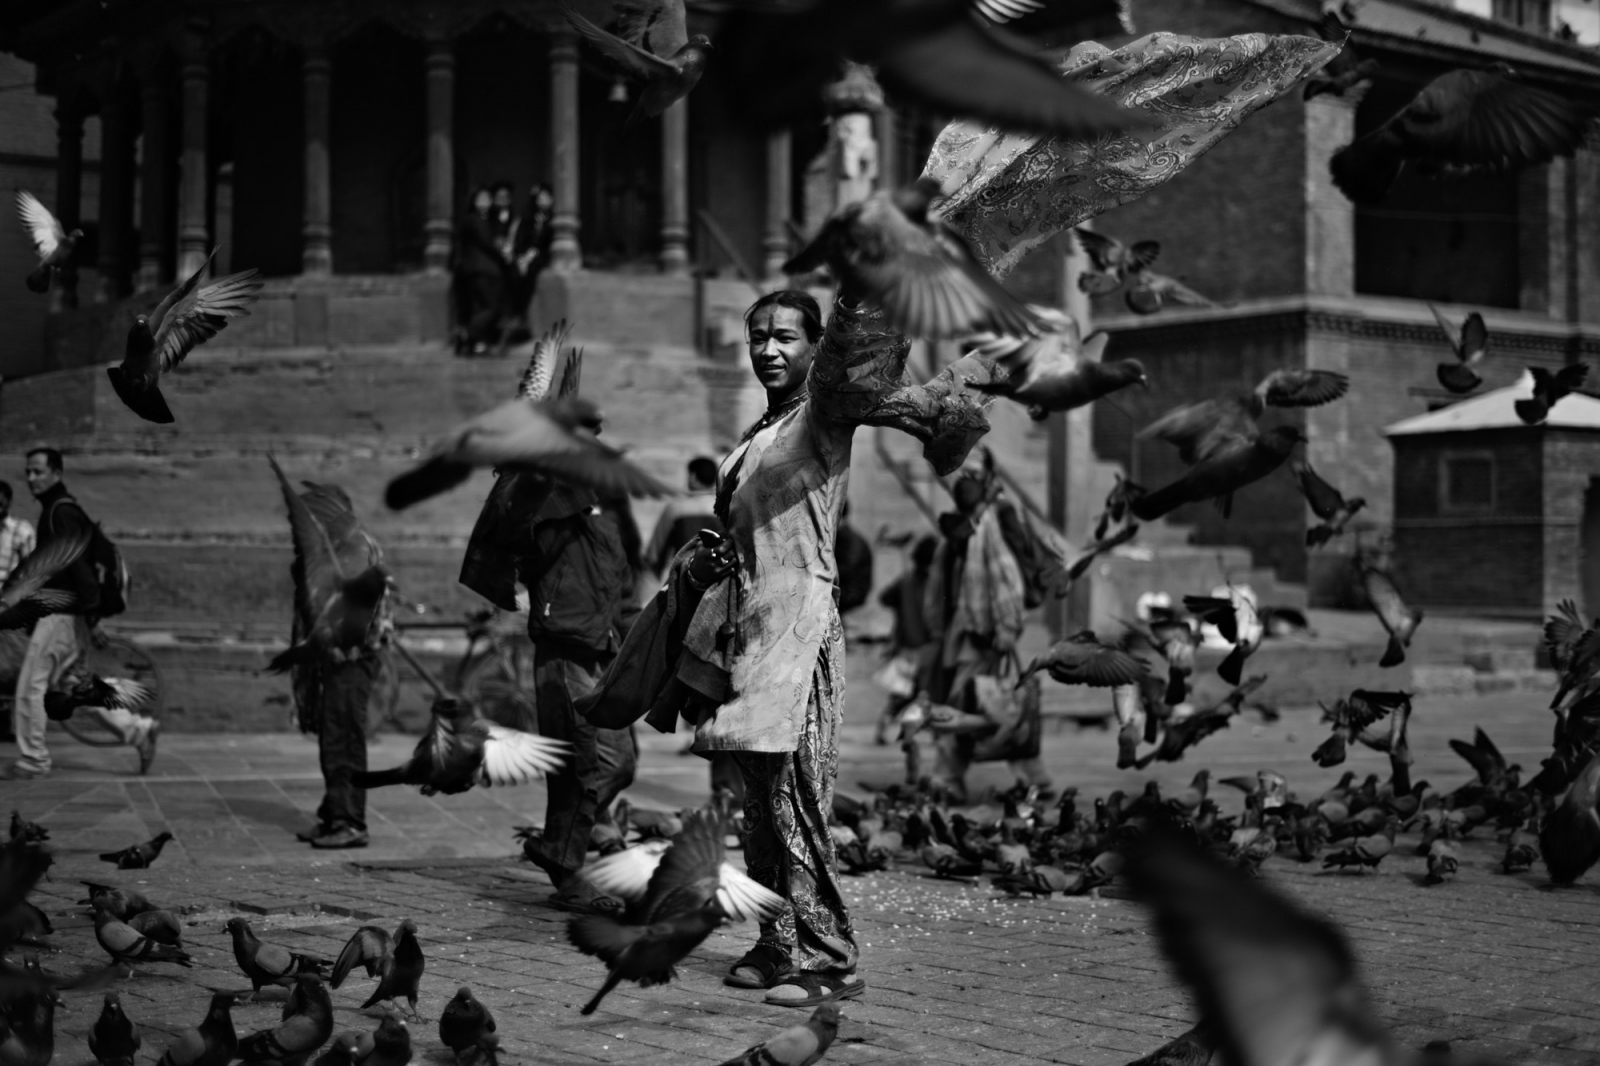 A woman walks through pigeons in Kathmandu's durbar square.